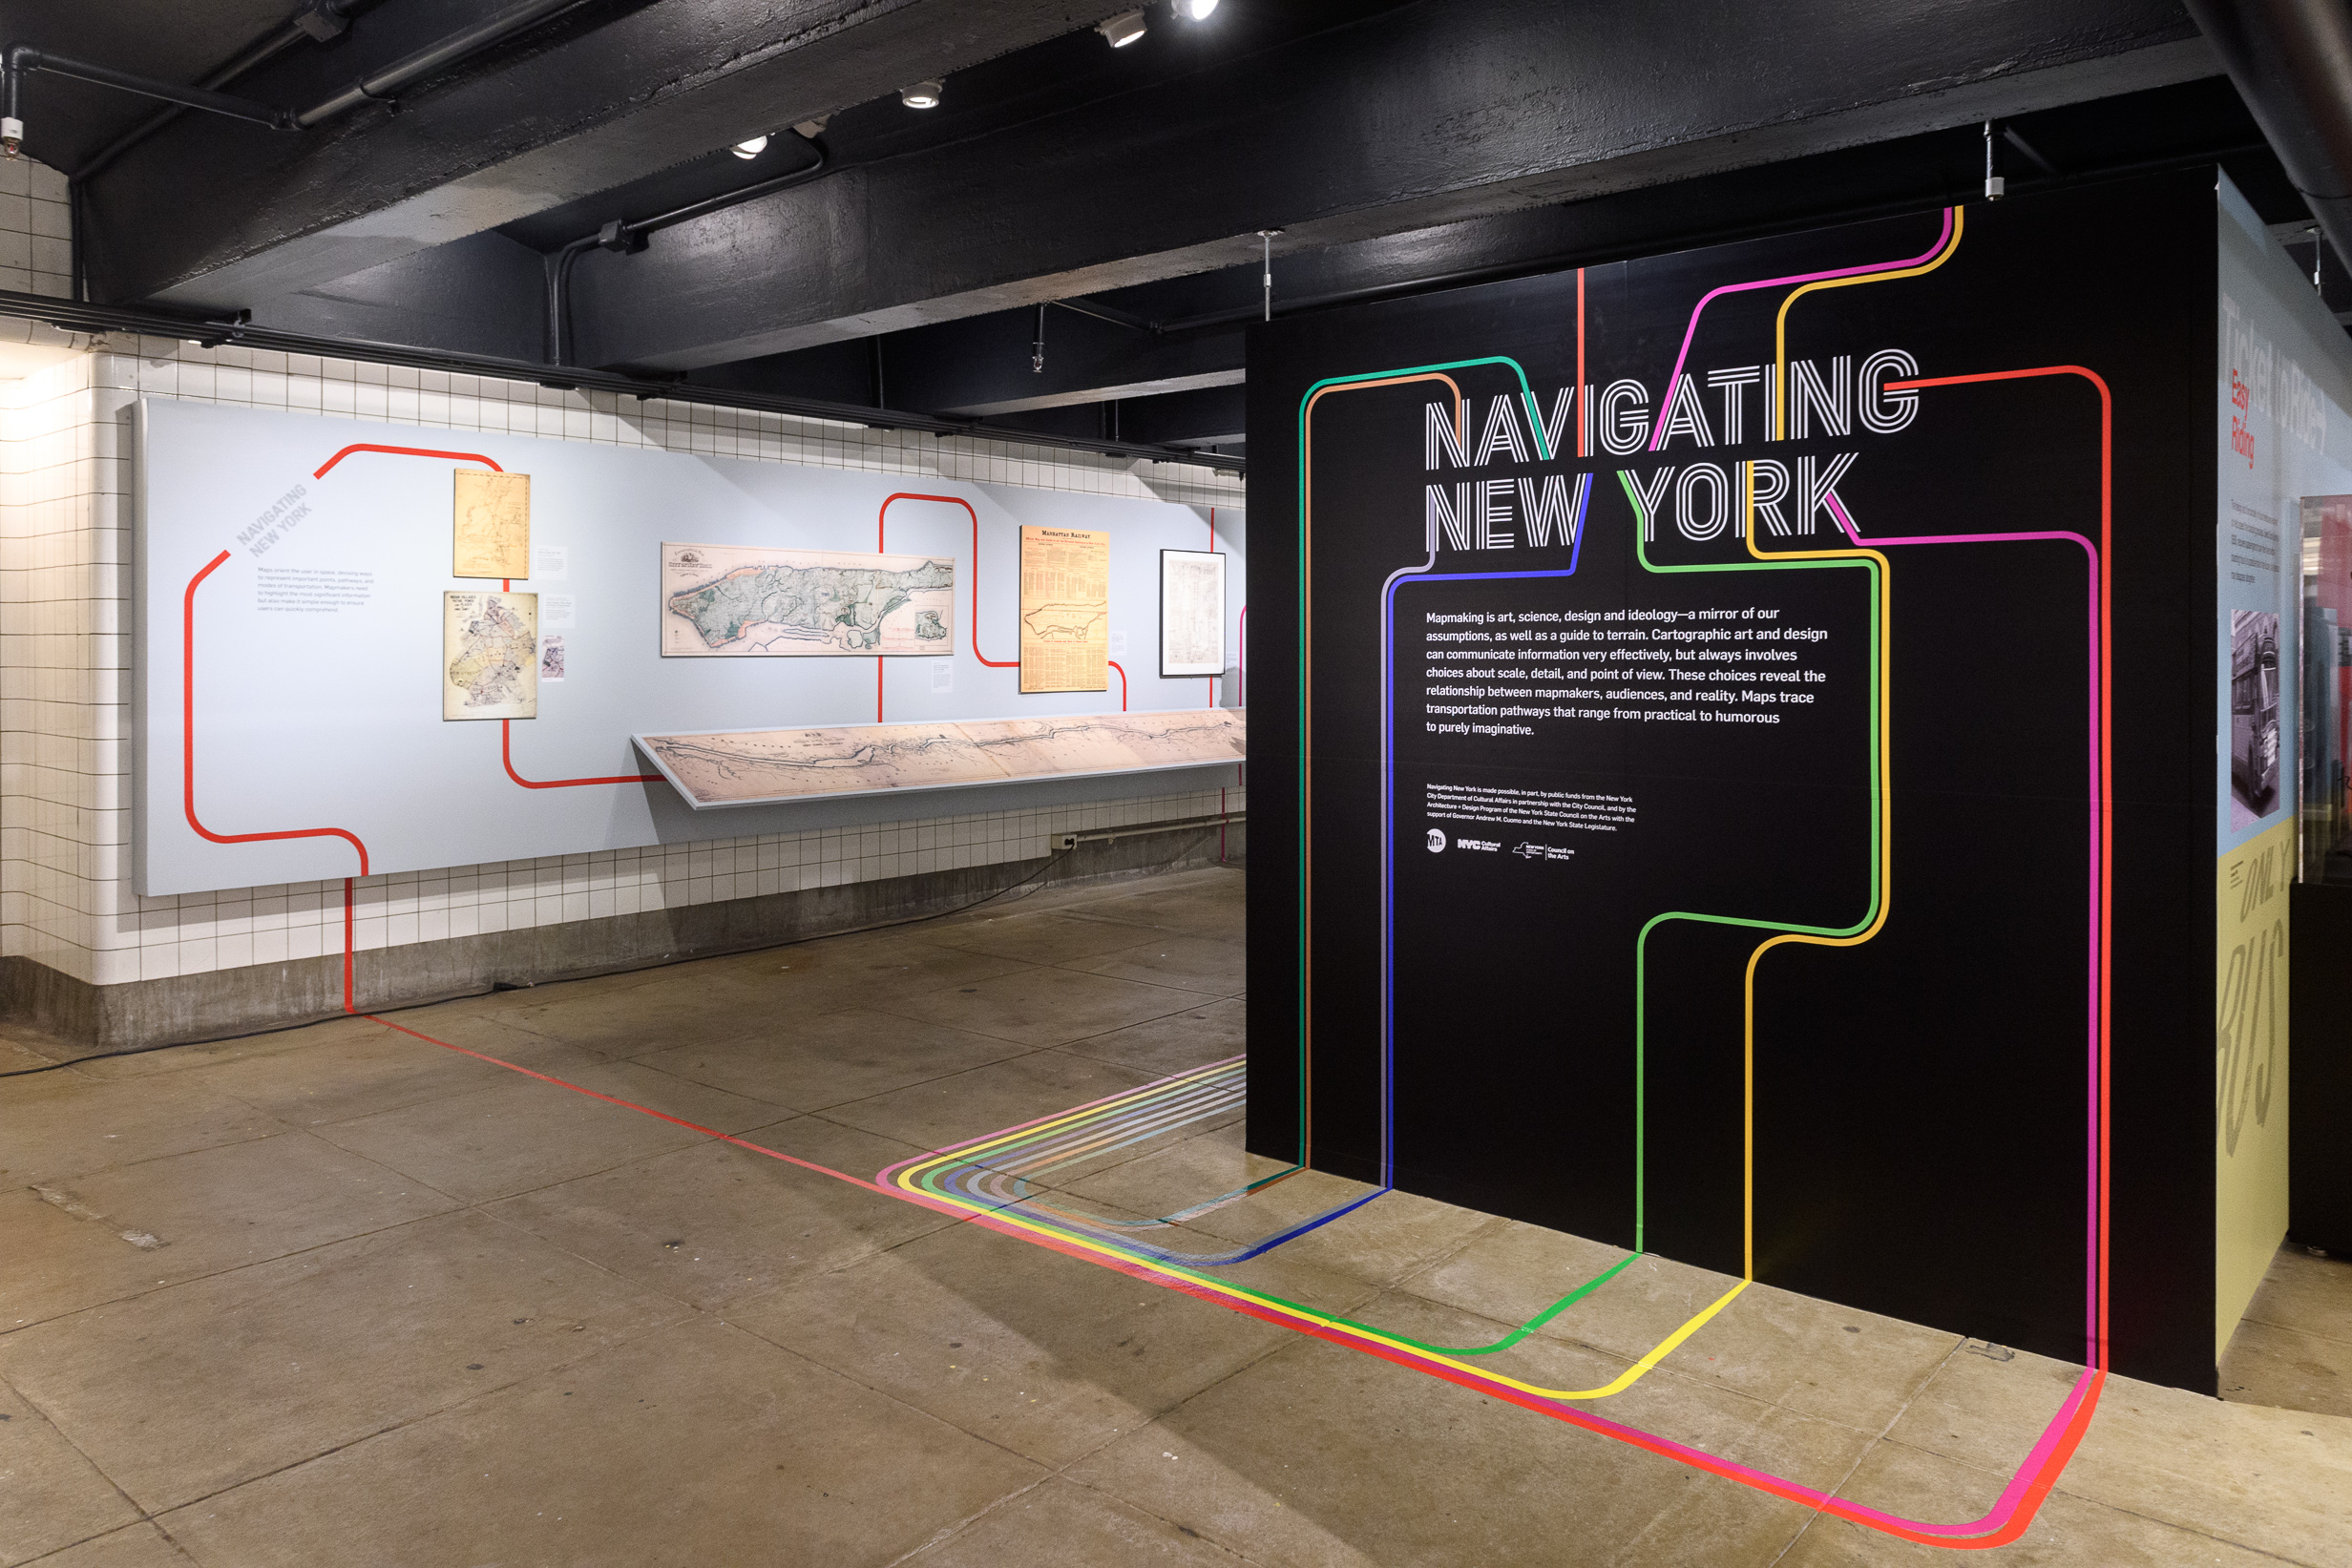 Nyc Subway Map And Guide.Nyc Subway Map S History And Influence Examined In New Museum